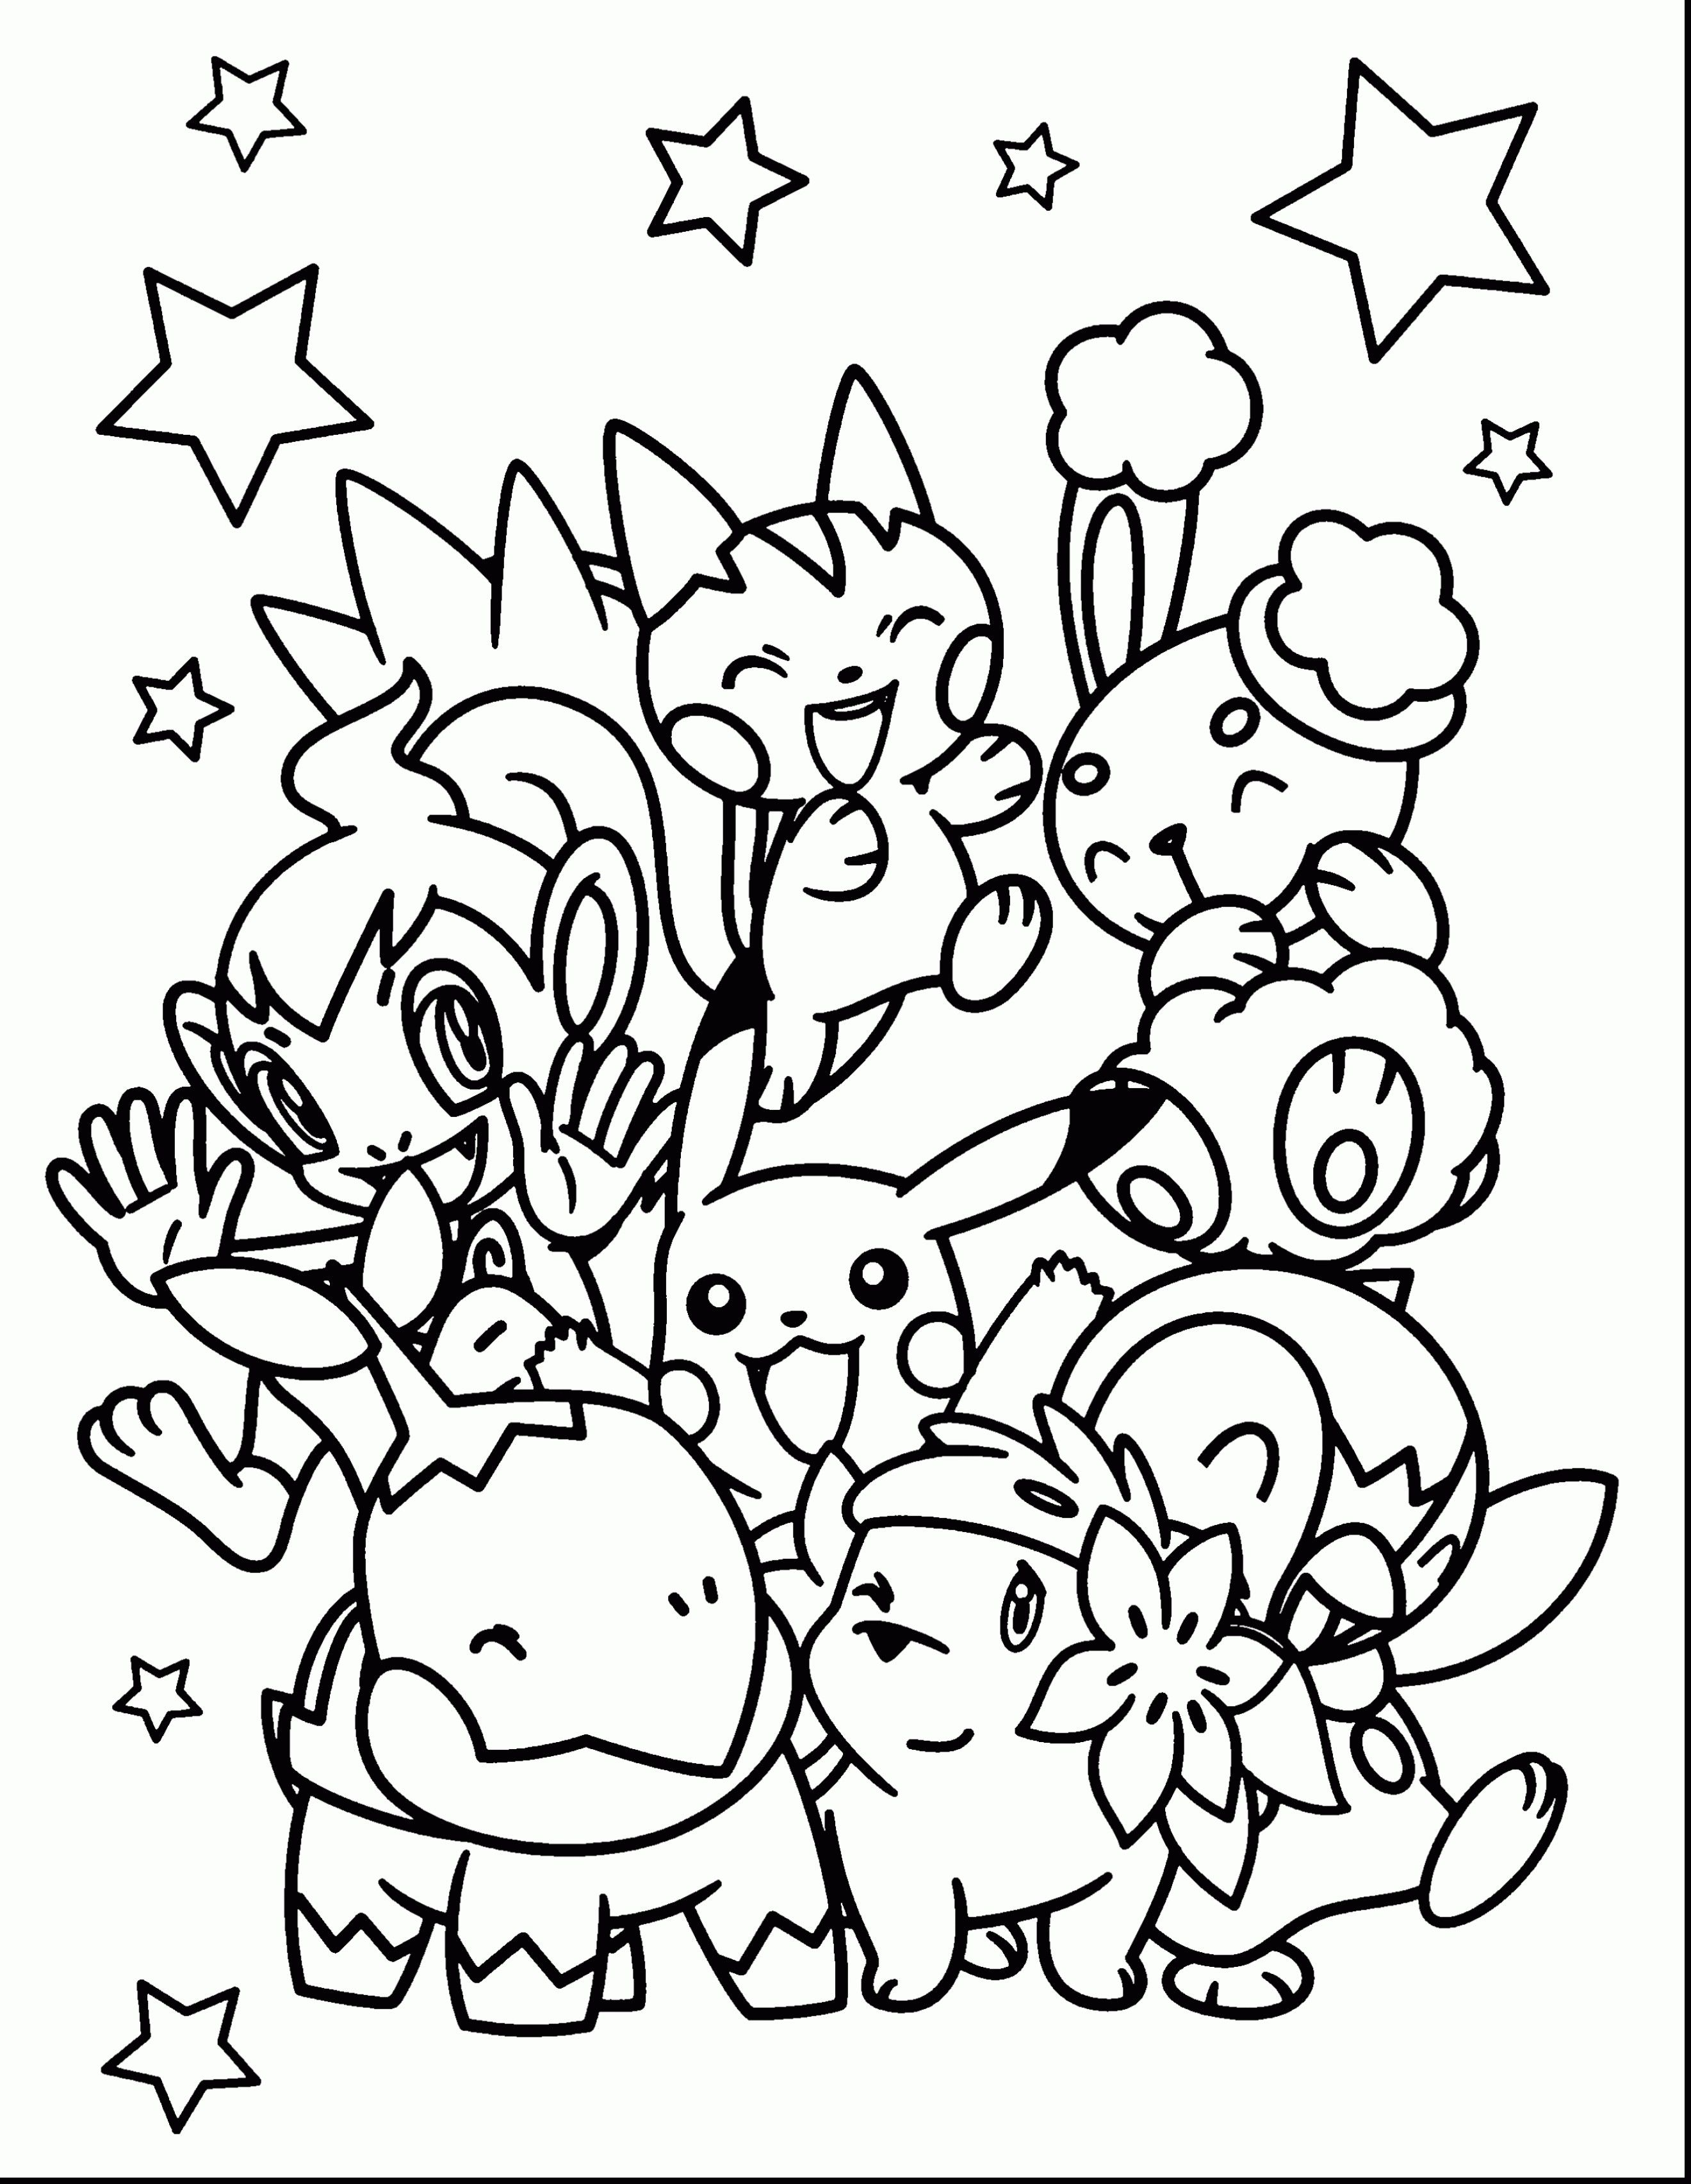 Pokemon Mew Coloring Pages Beautiful Printable Pokemon Coloring Pokemon Coloring Sheets Pokemon Coloring Pages Pokemon Coloring